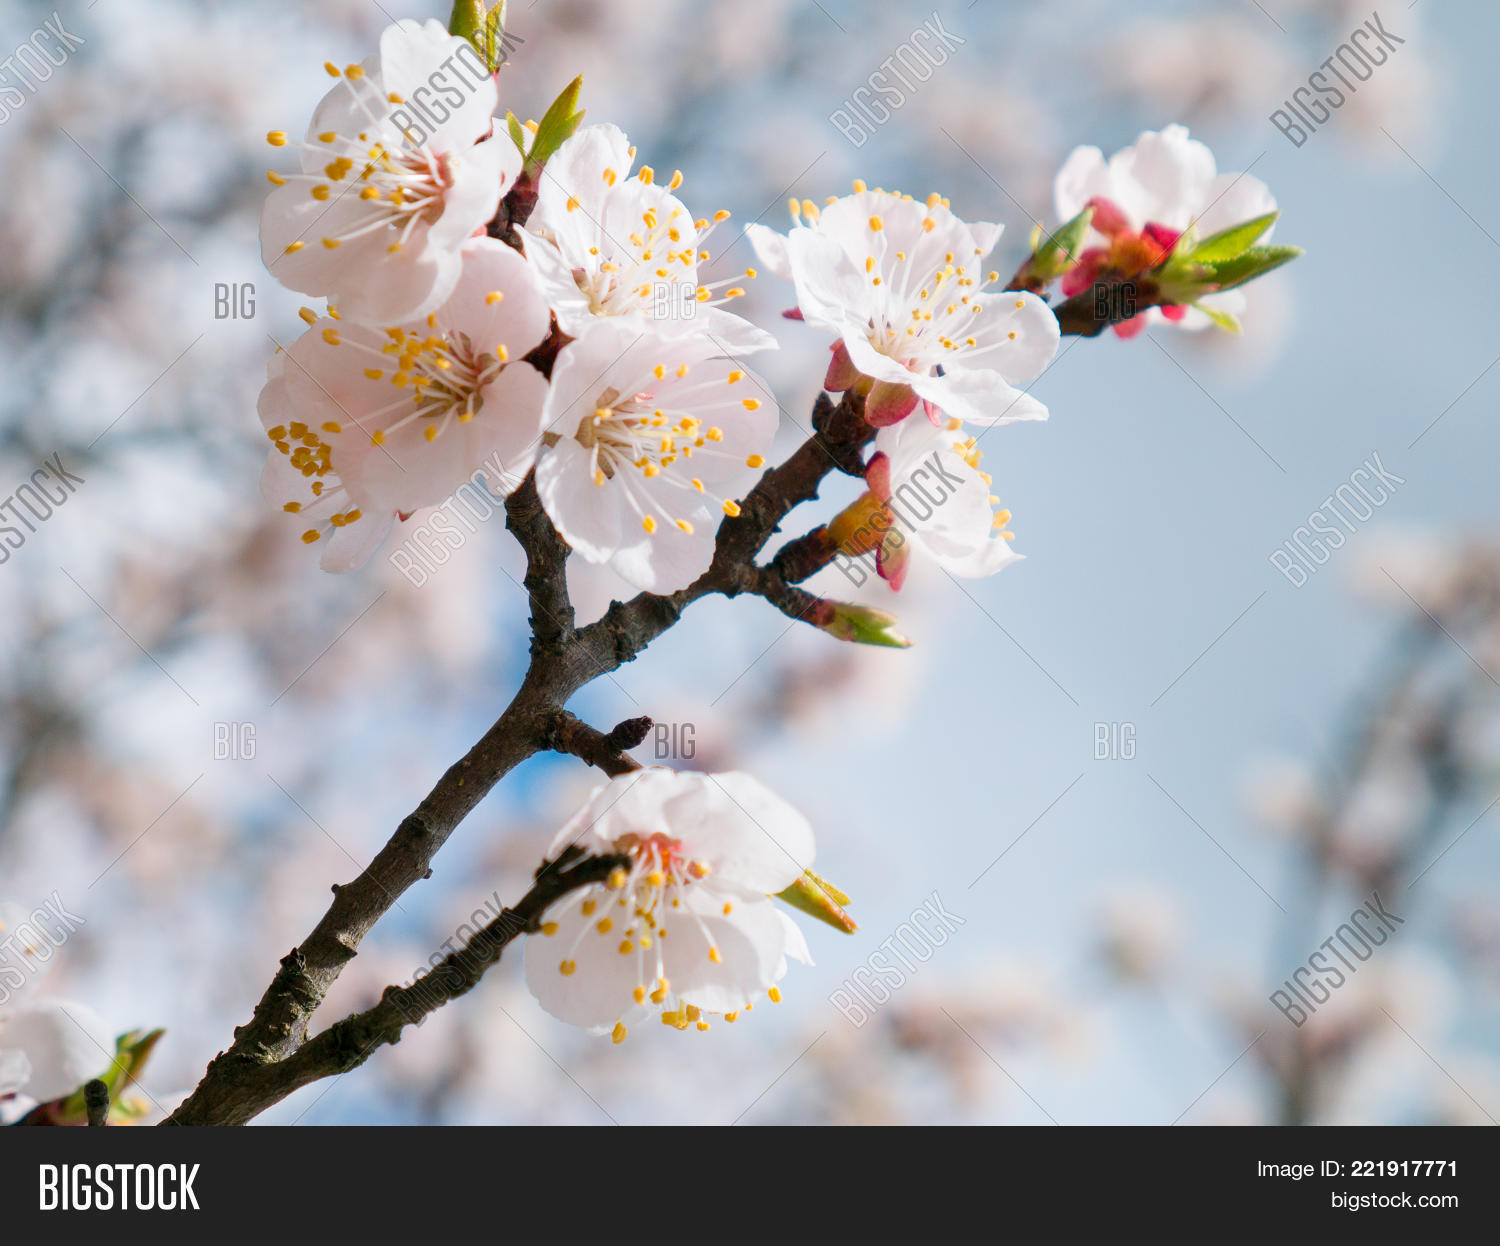 Apricot Tree Flowers Image Photo Free Trial Bigstock